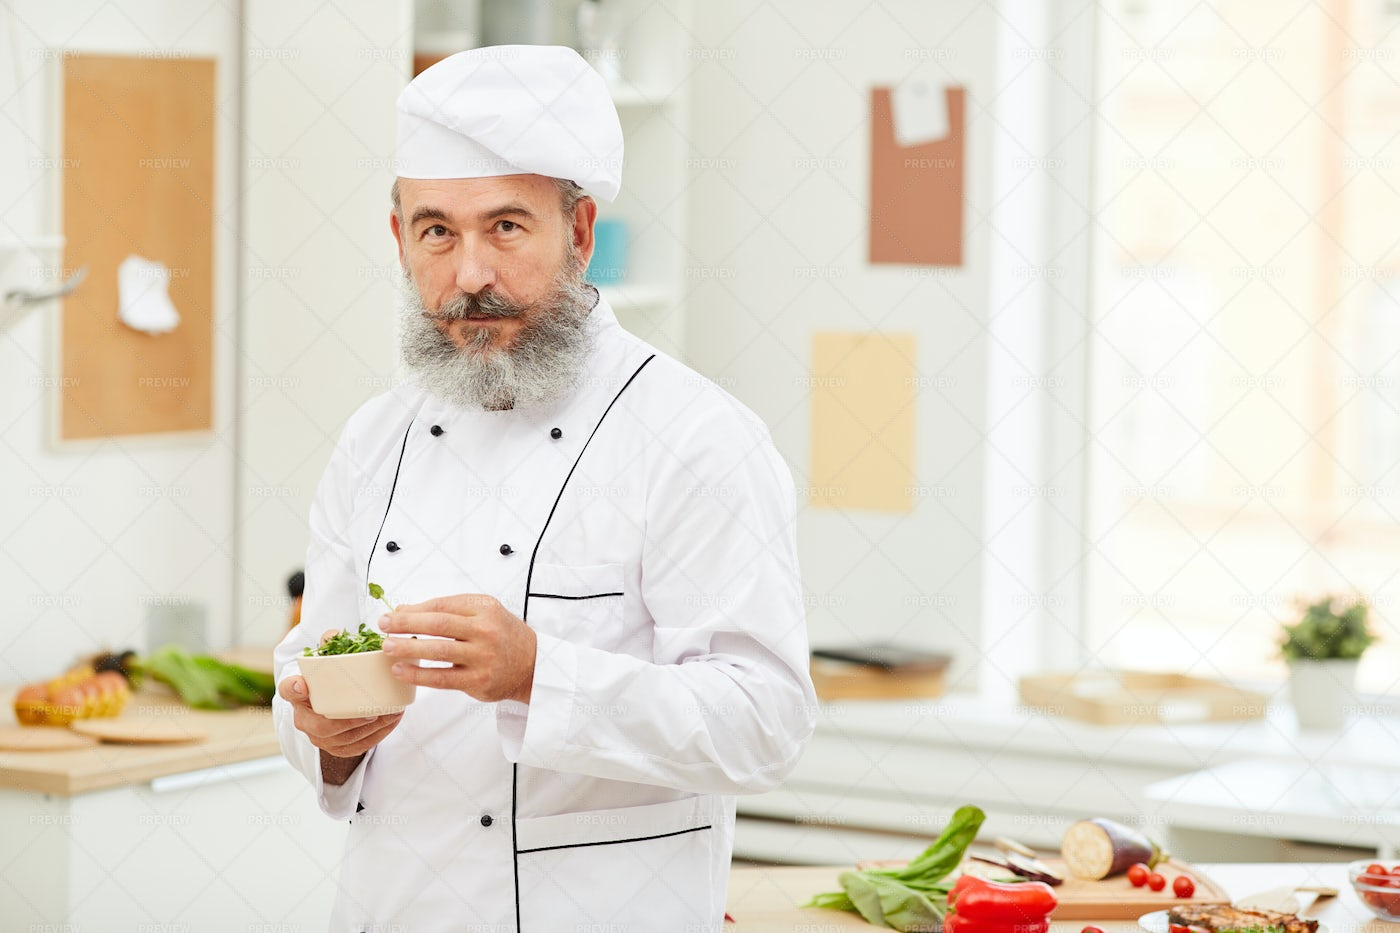 Professional Chef Posing In Kitchen: Stock Photos